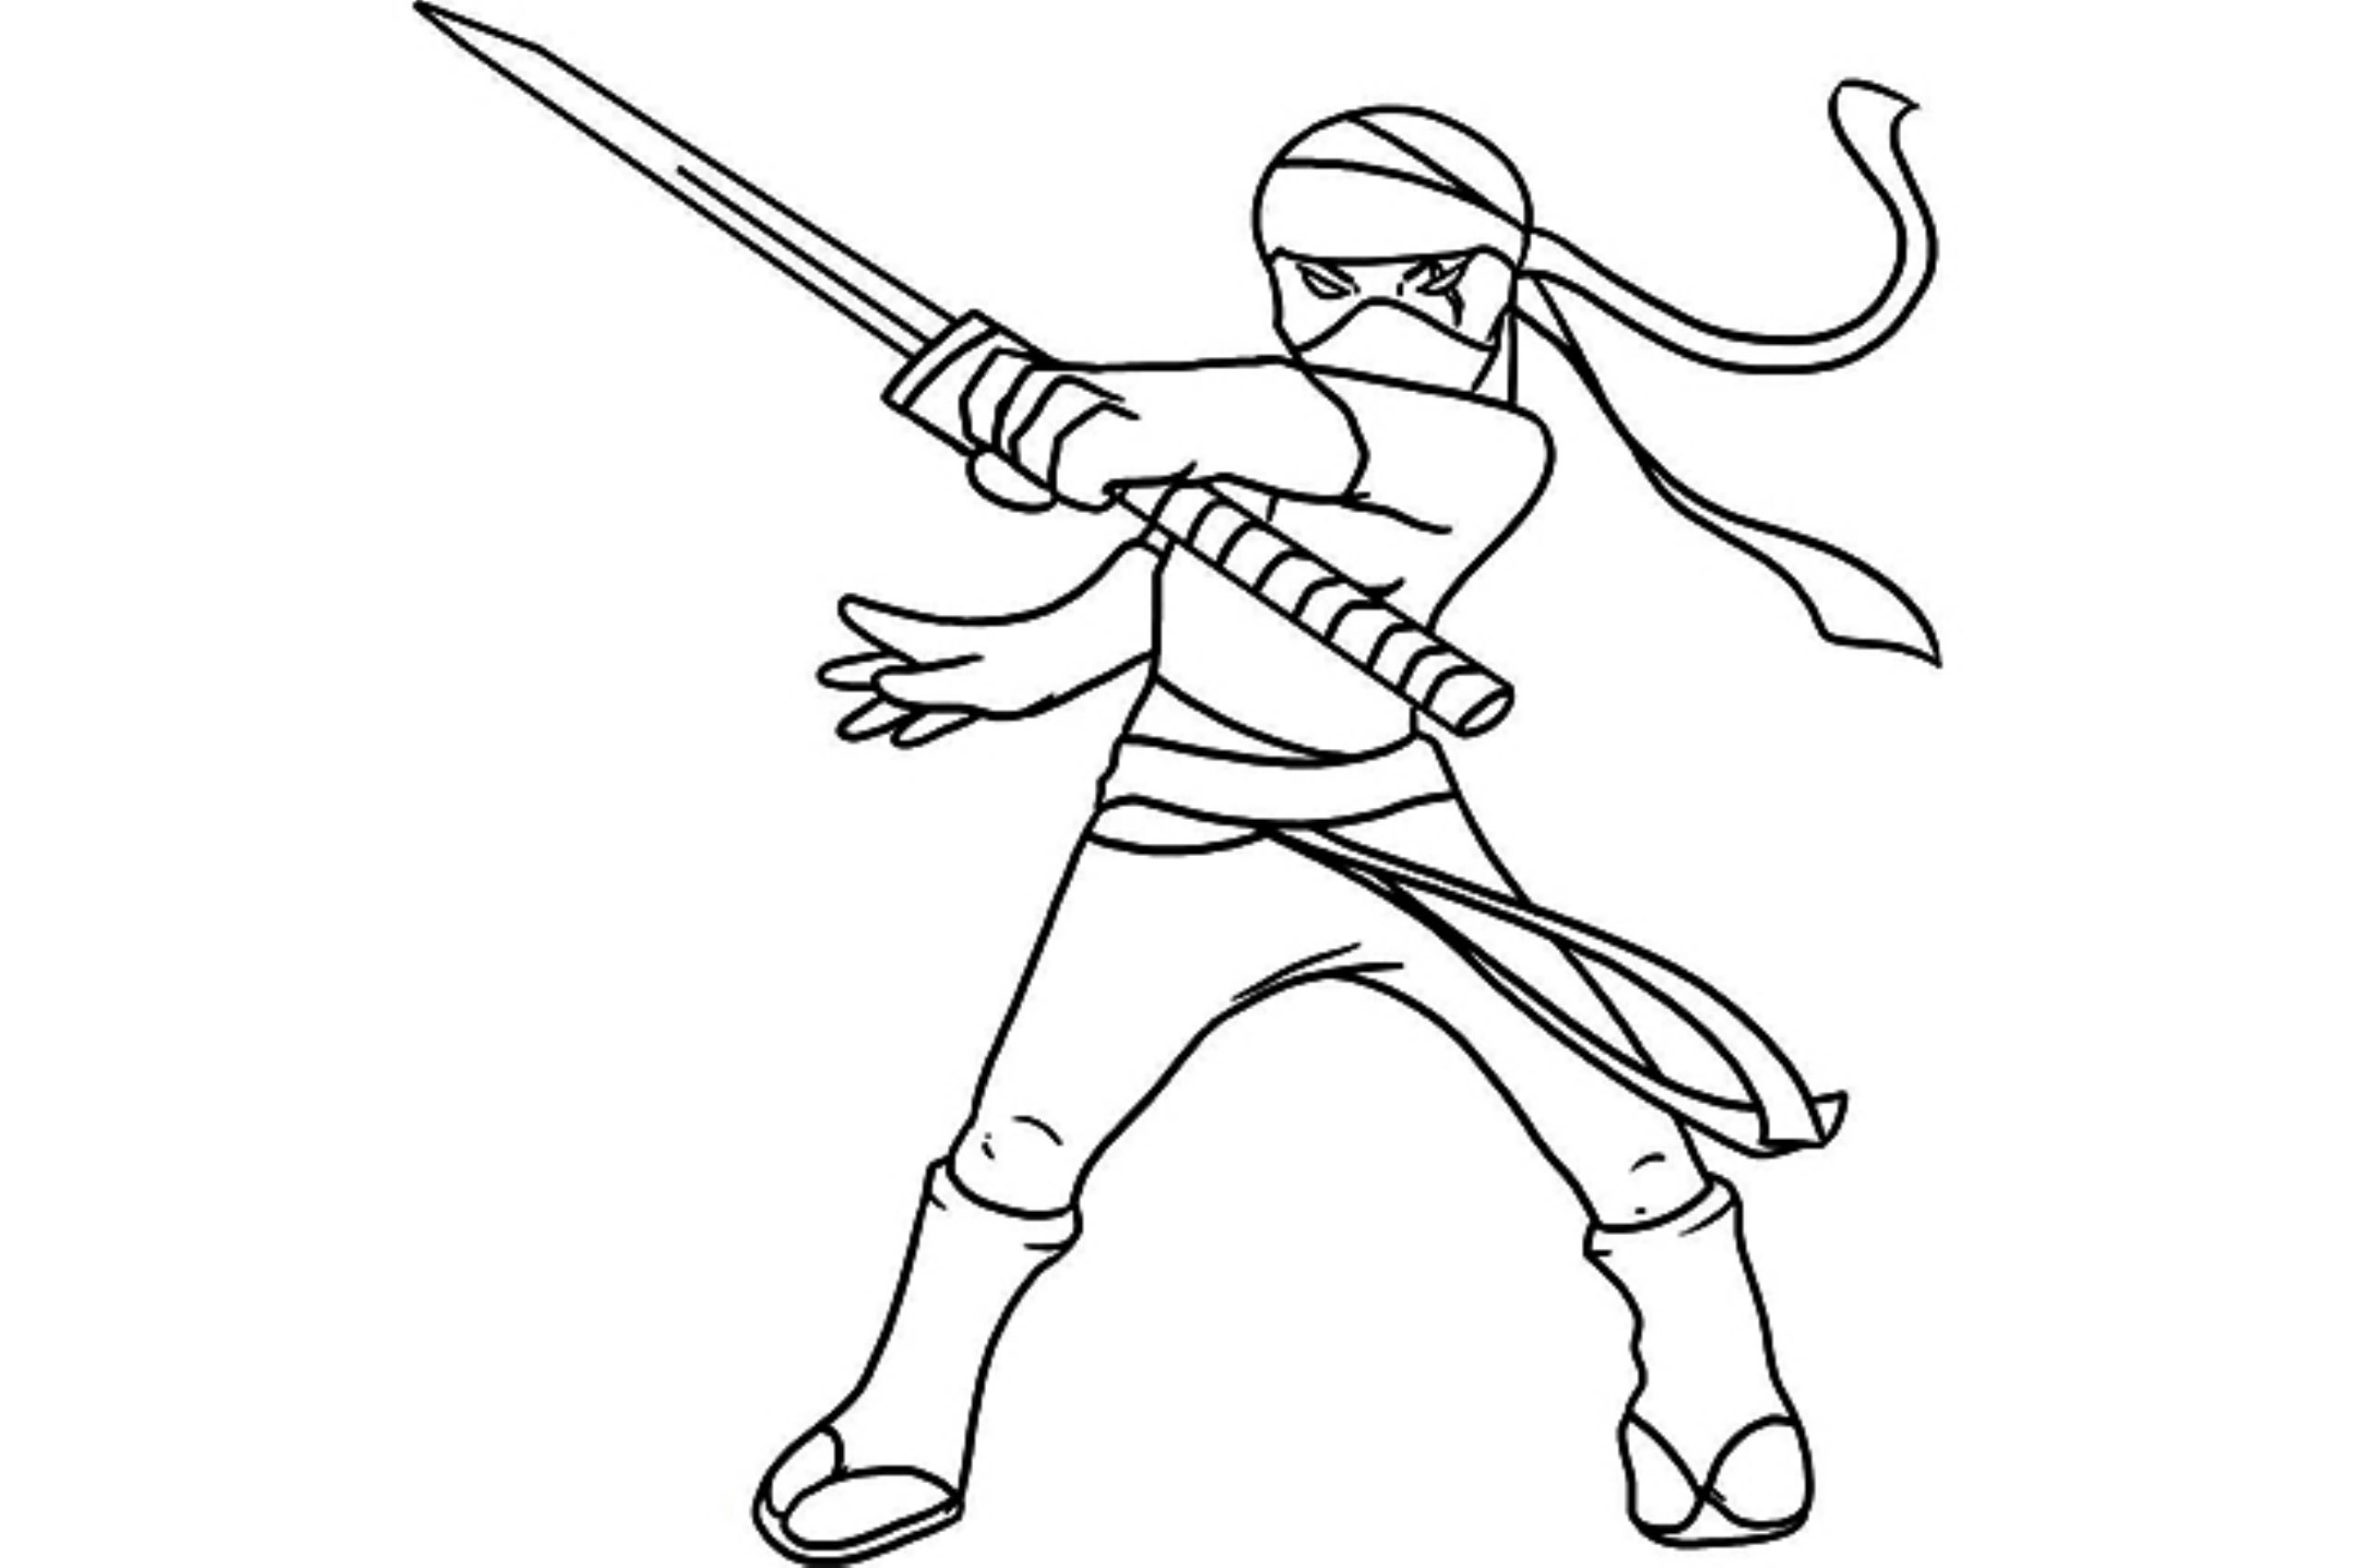 picture regarding Ninja Coloring Pages Printable called Emphasize Ninja Coloring Web pages For Grown ups #21354 Everyday